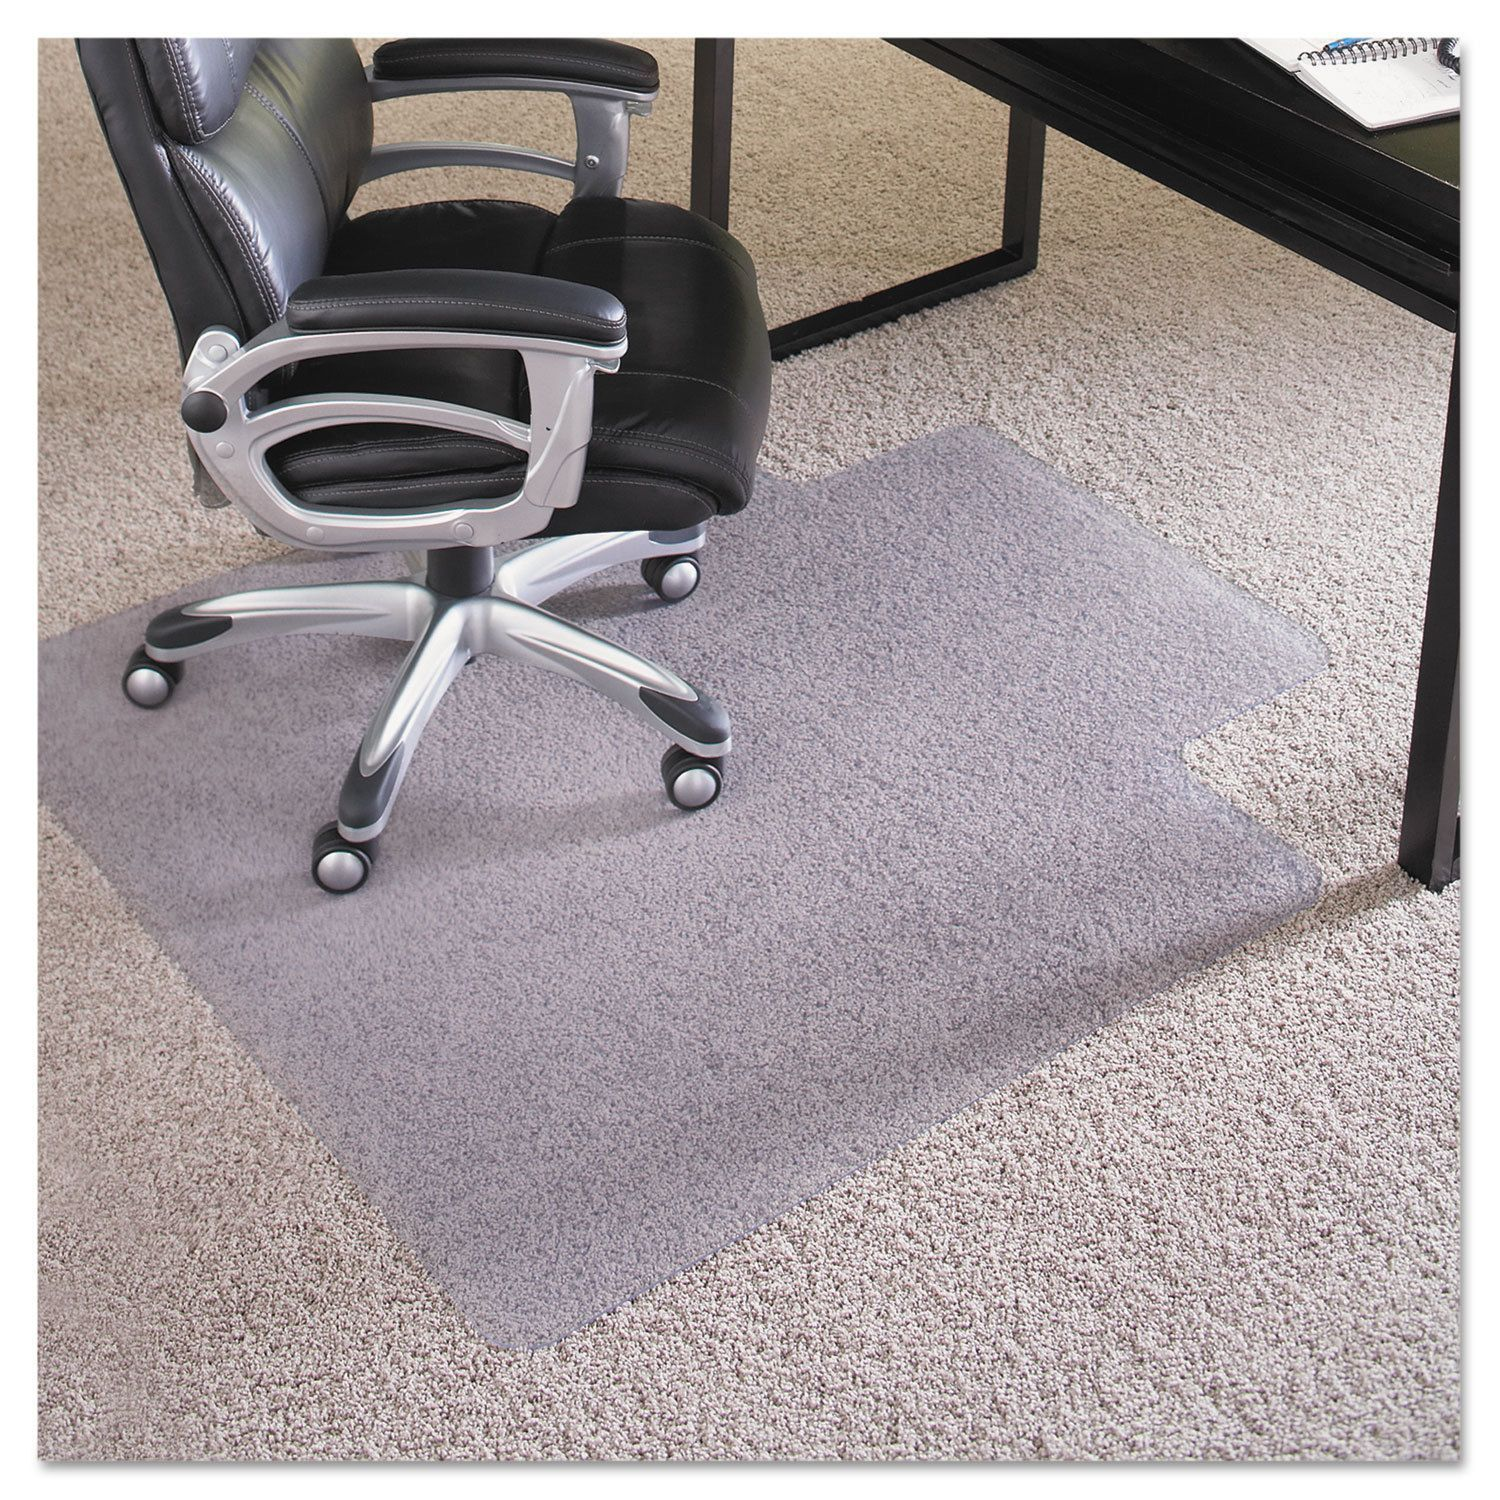 x floors robbins recipename hard product mats for clear chair imageservice profileid no lip mat imageid es